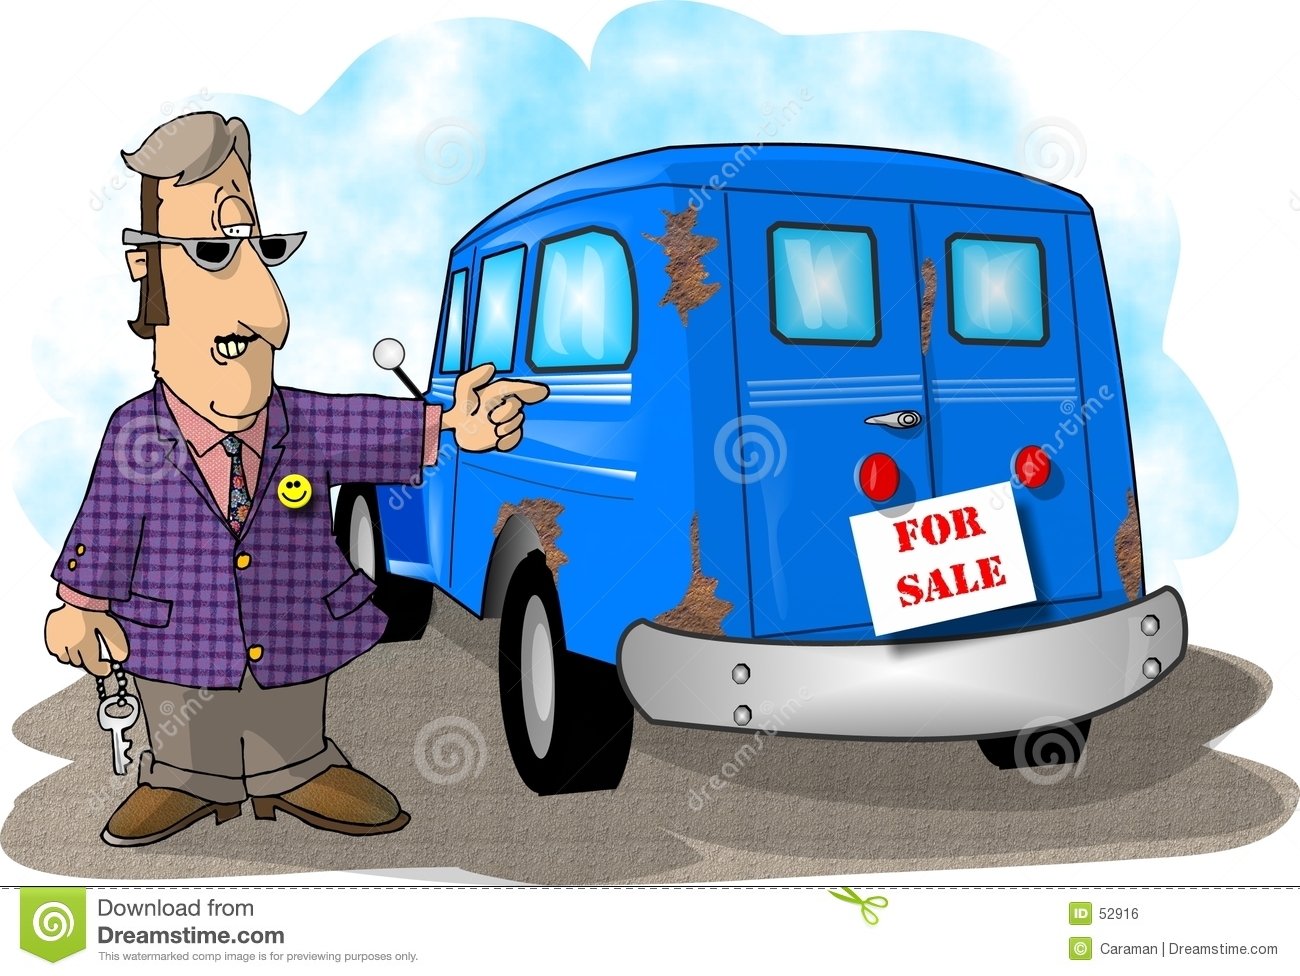 Used Cars For Sale Stock Image Image Of Cars License: Used Car Sales Stock Illustration. Illustration Of